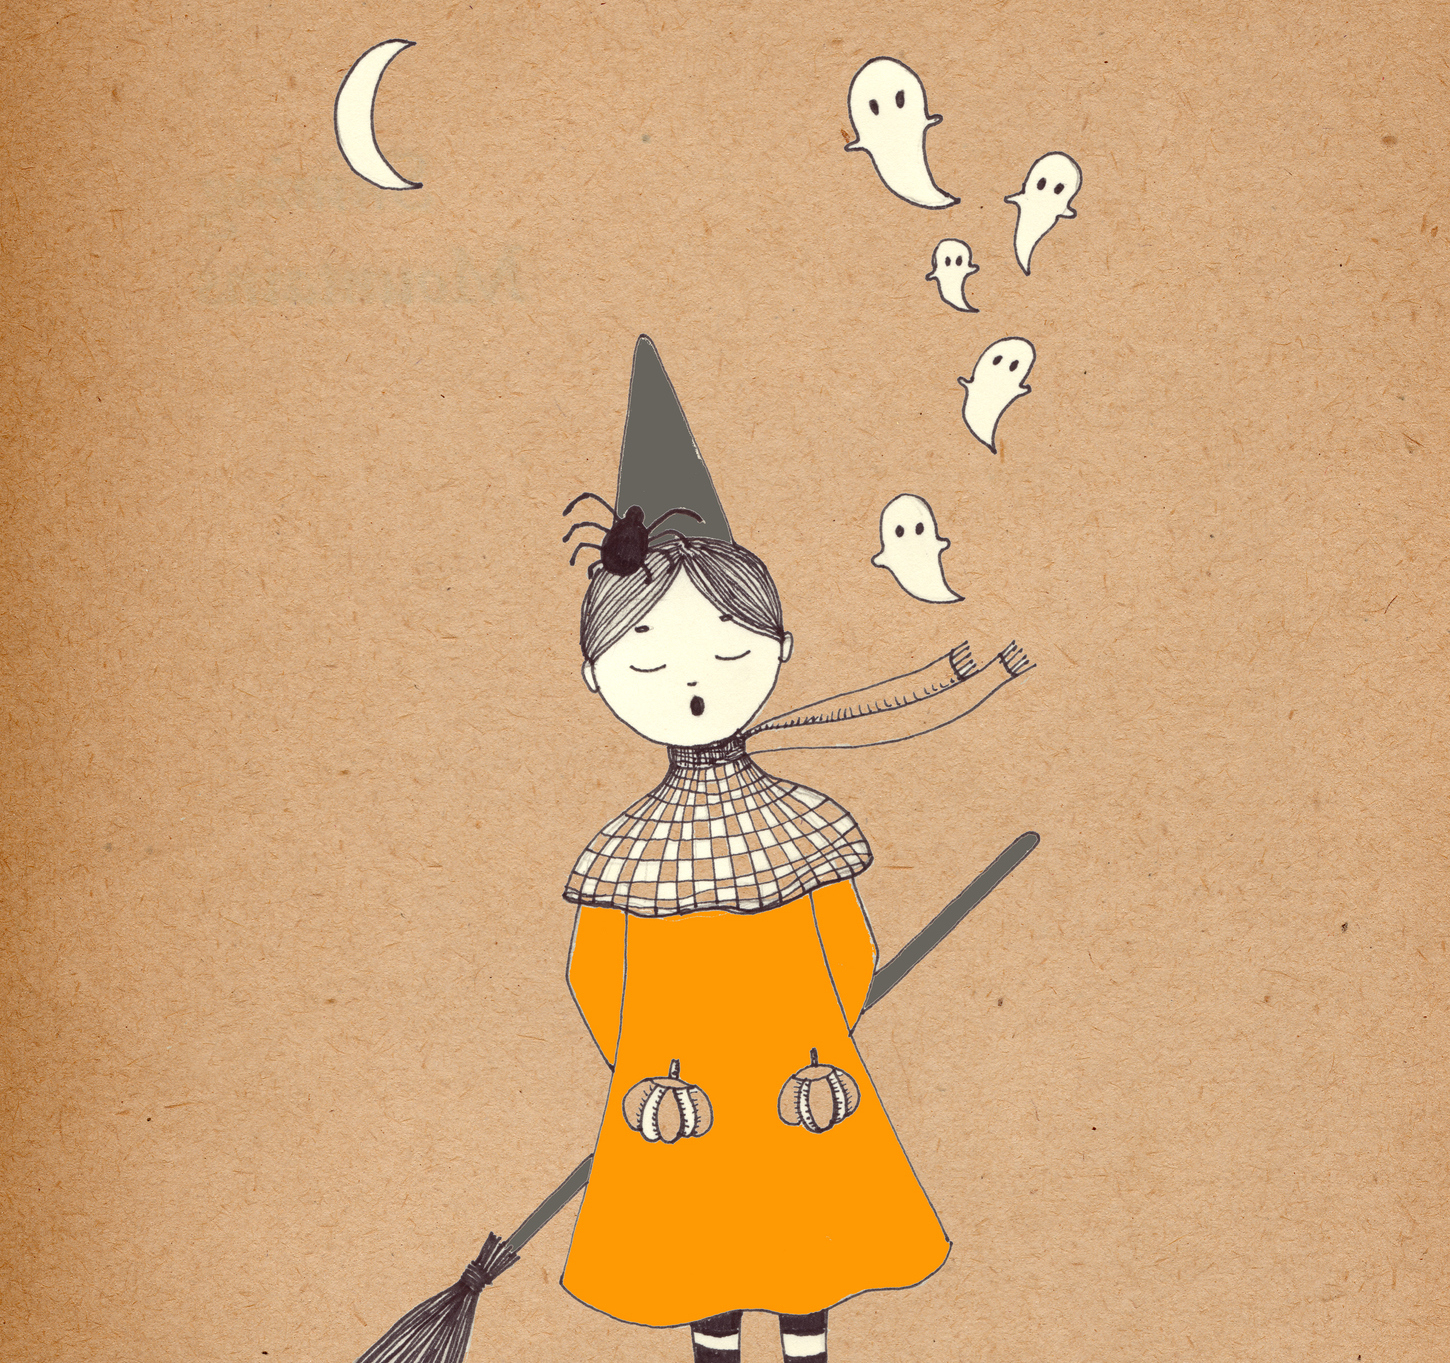 A young girl witch singing to ghosts